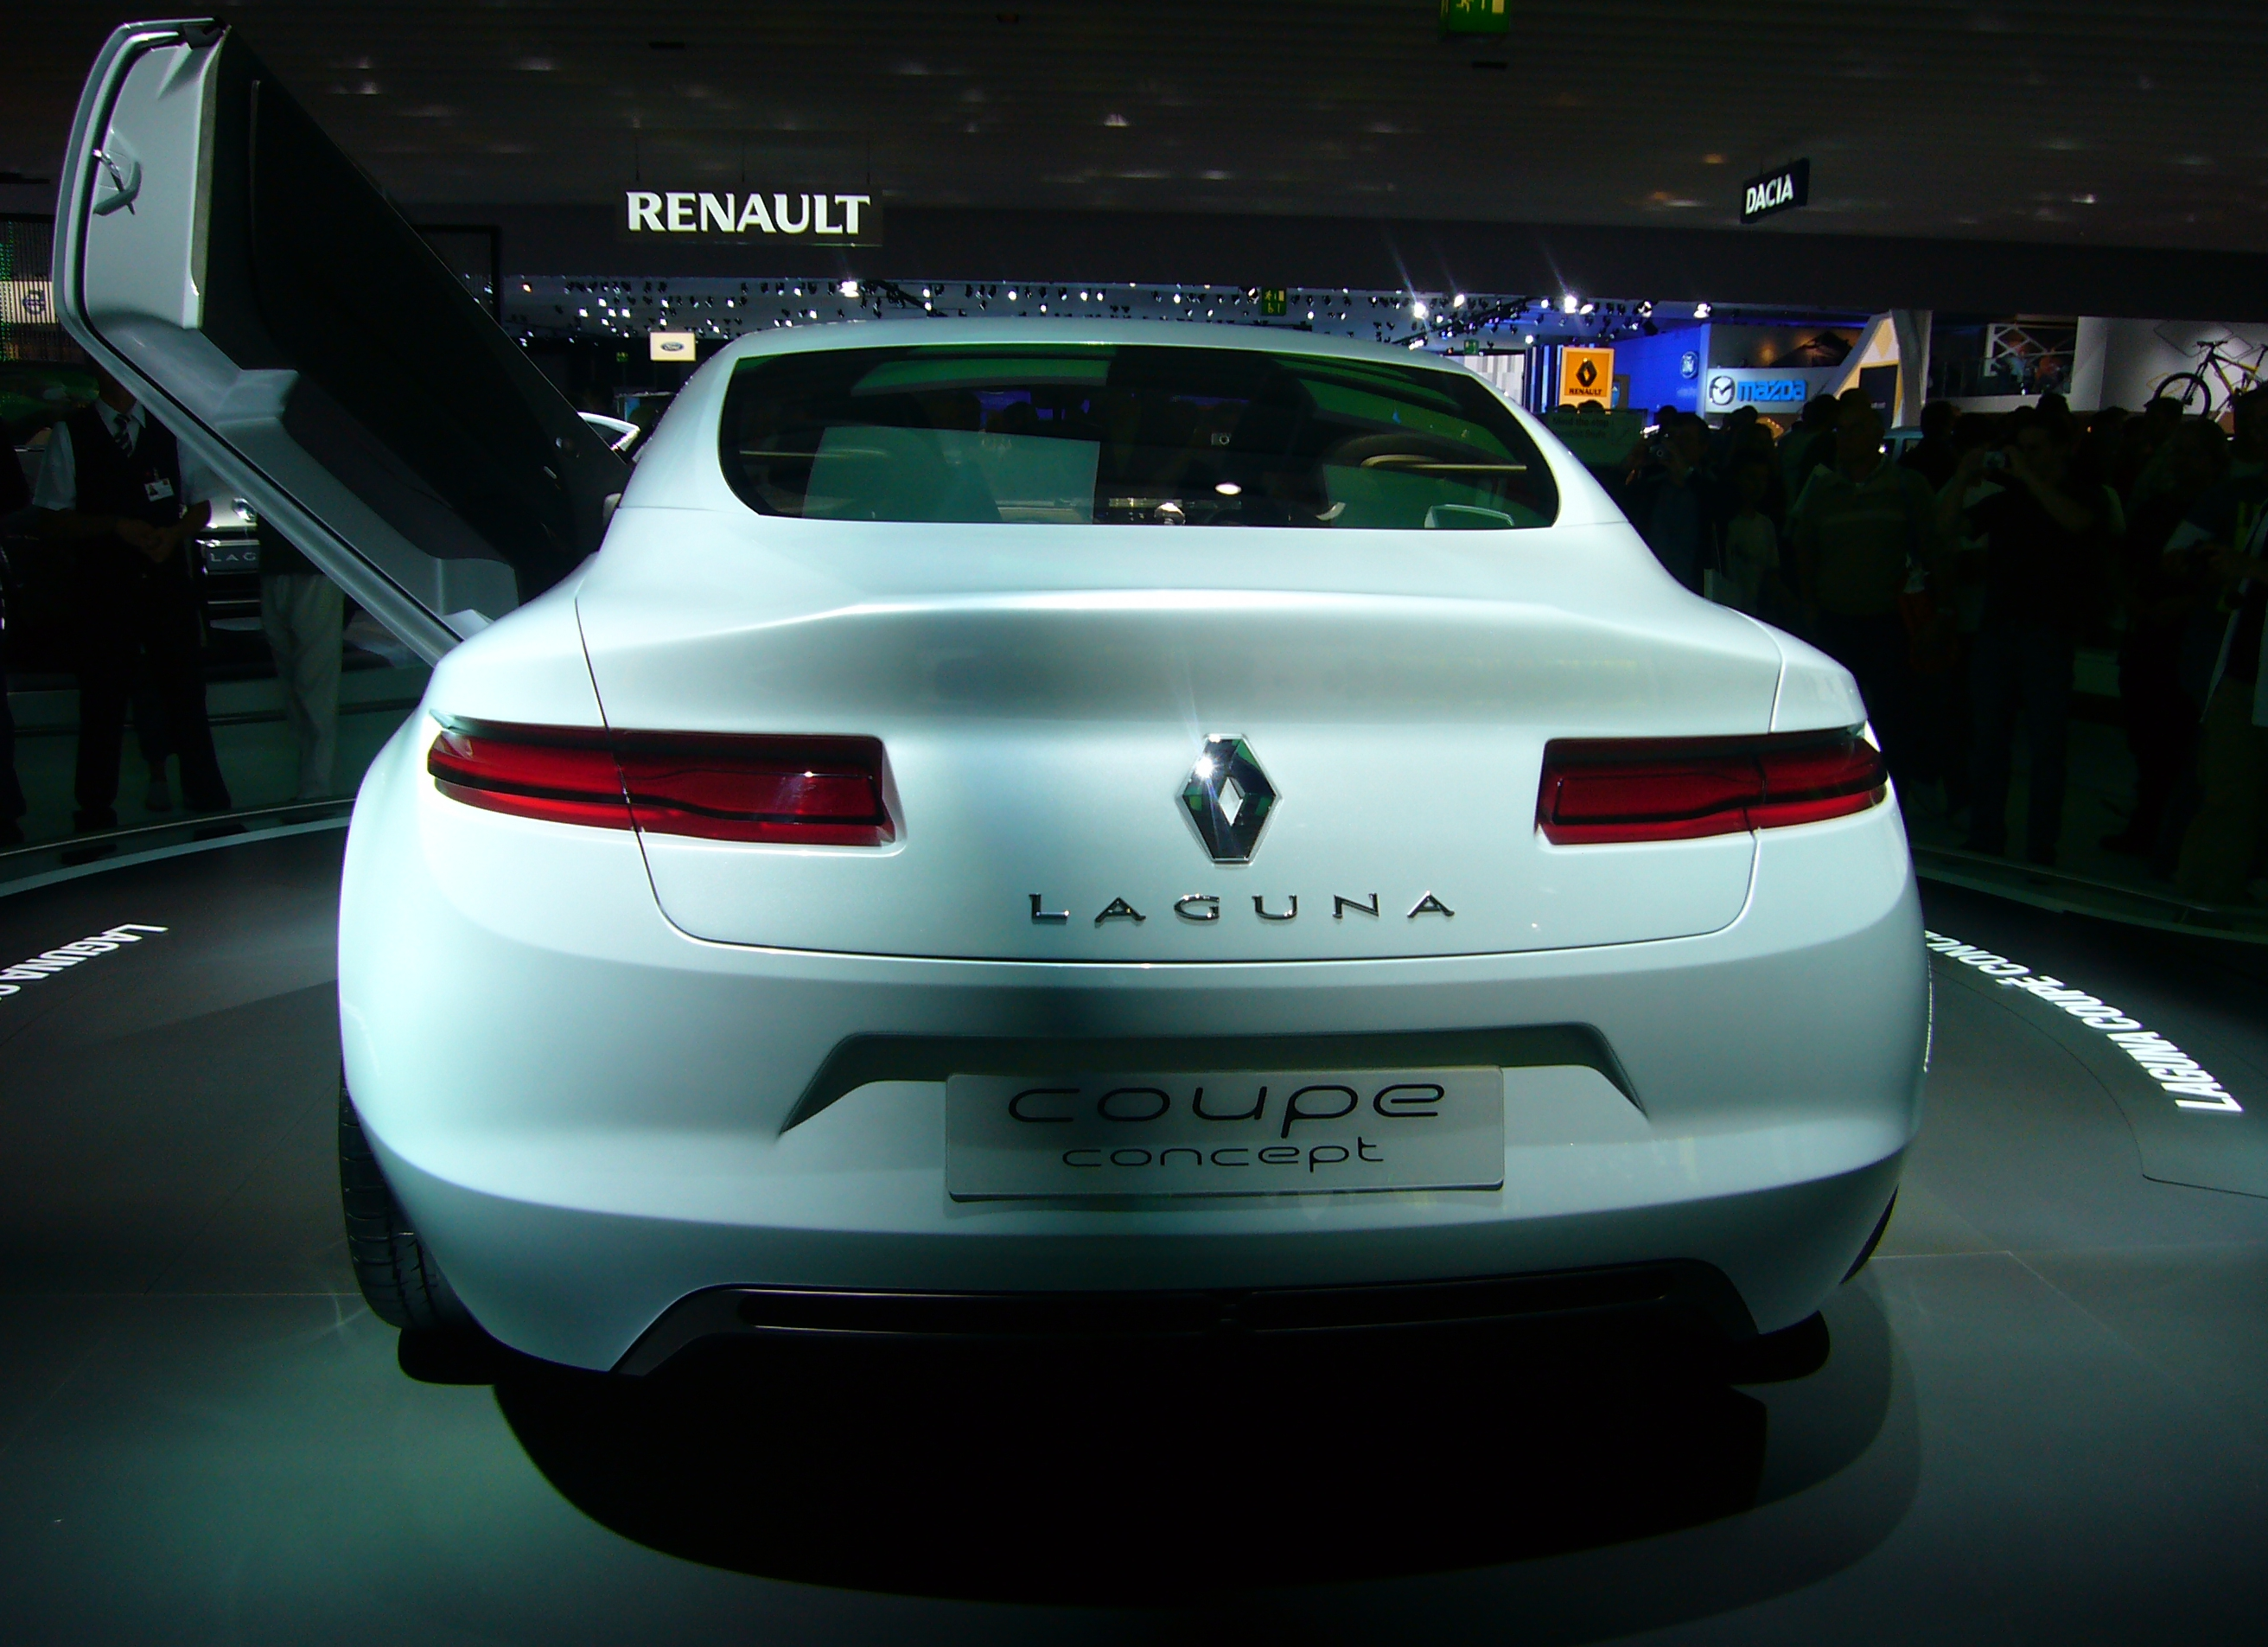 file renault laguna coupe concept rear jpg wikimedia commons. Black Bedroom Furniture Sets. Home Design Ideas